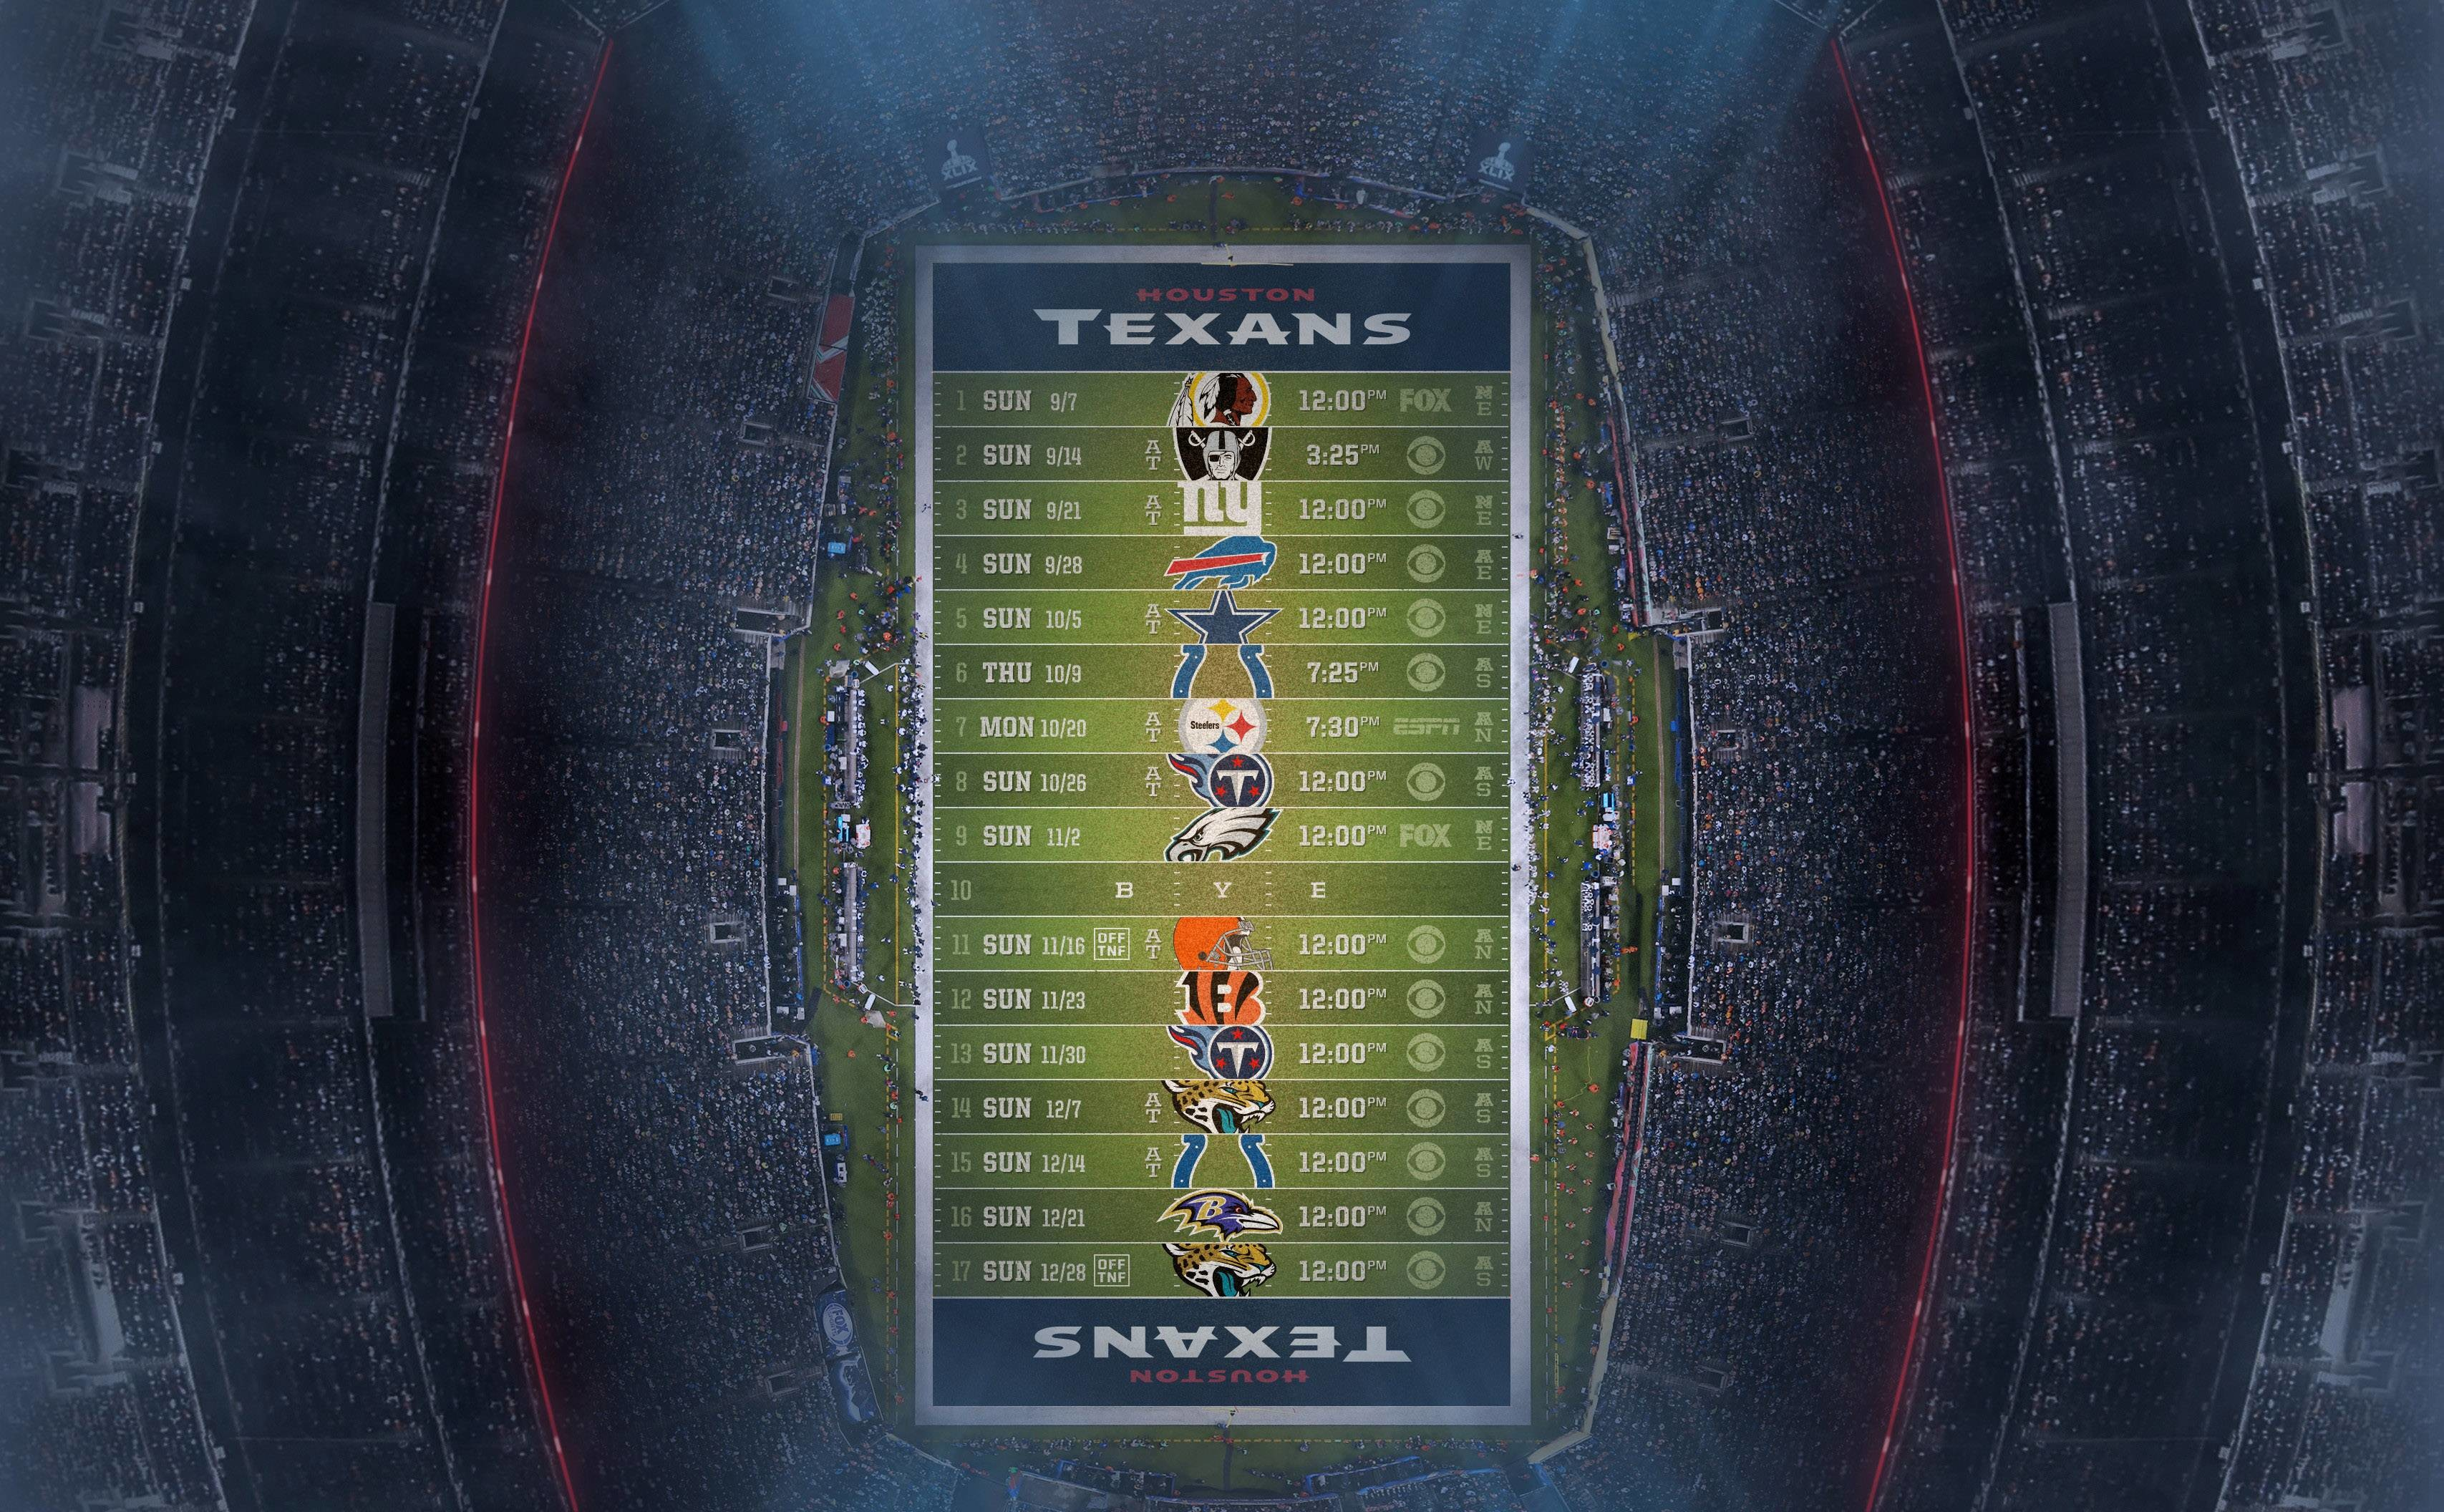 3414x2112 Houston Texans 2014 NFL Schedule Wallpaper Wide or HD | Sports .